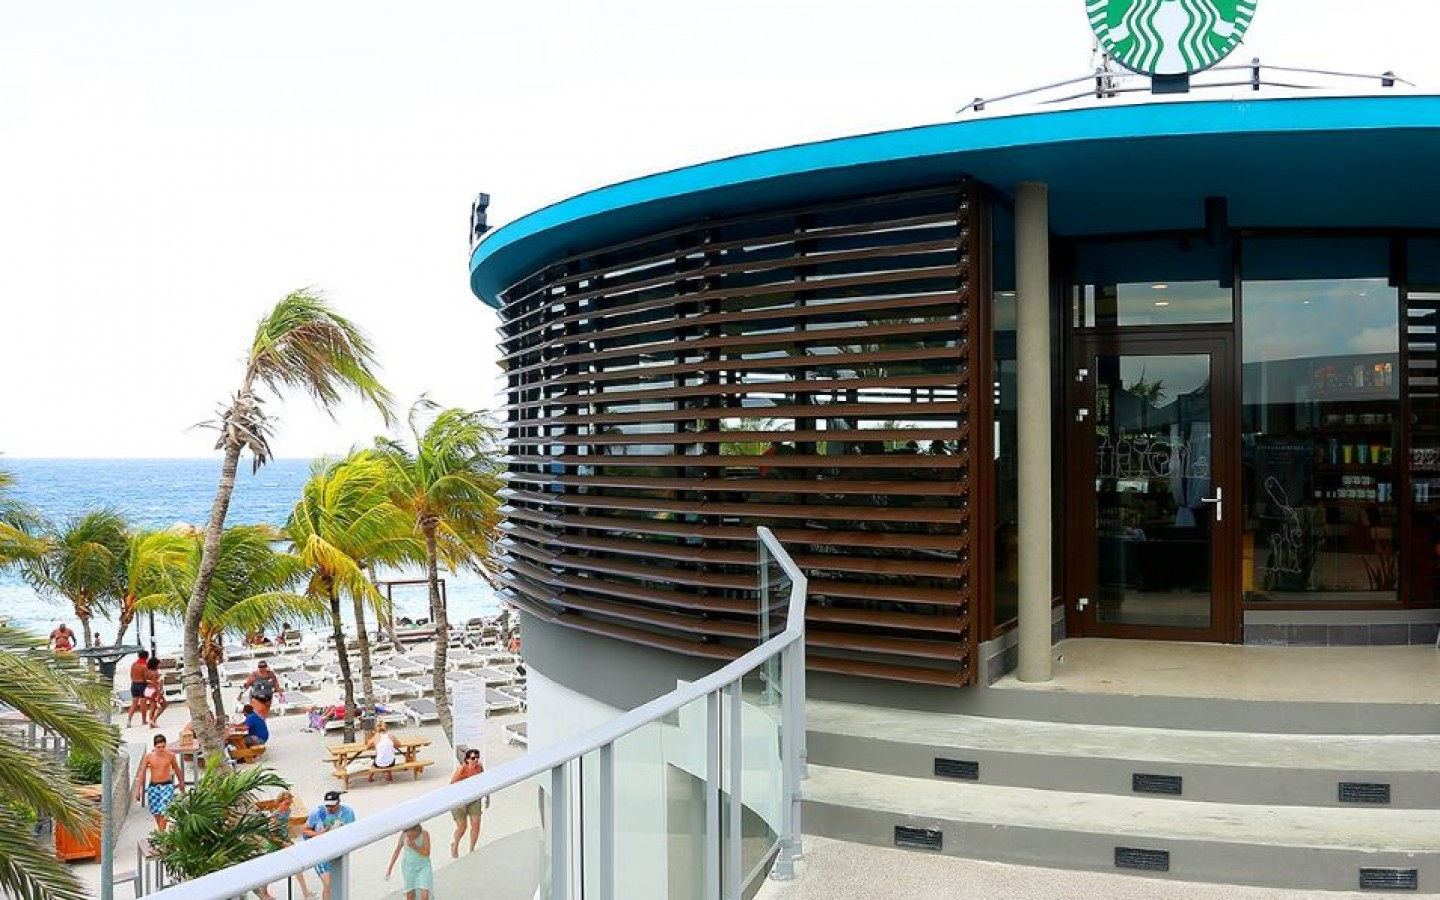 Best Restaurant In Willemstad Curacao